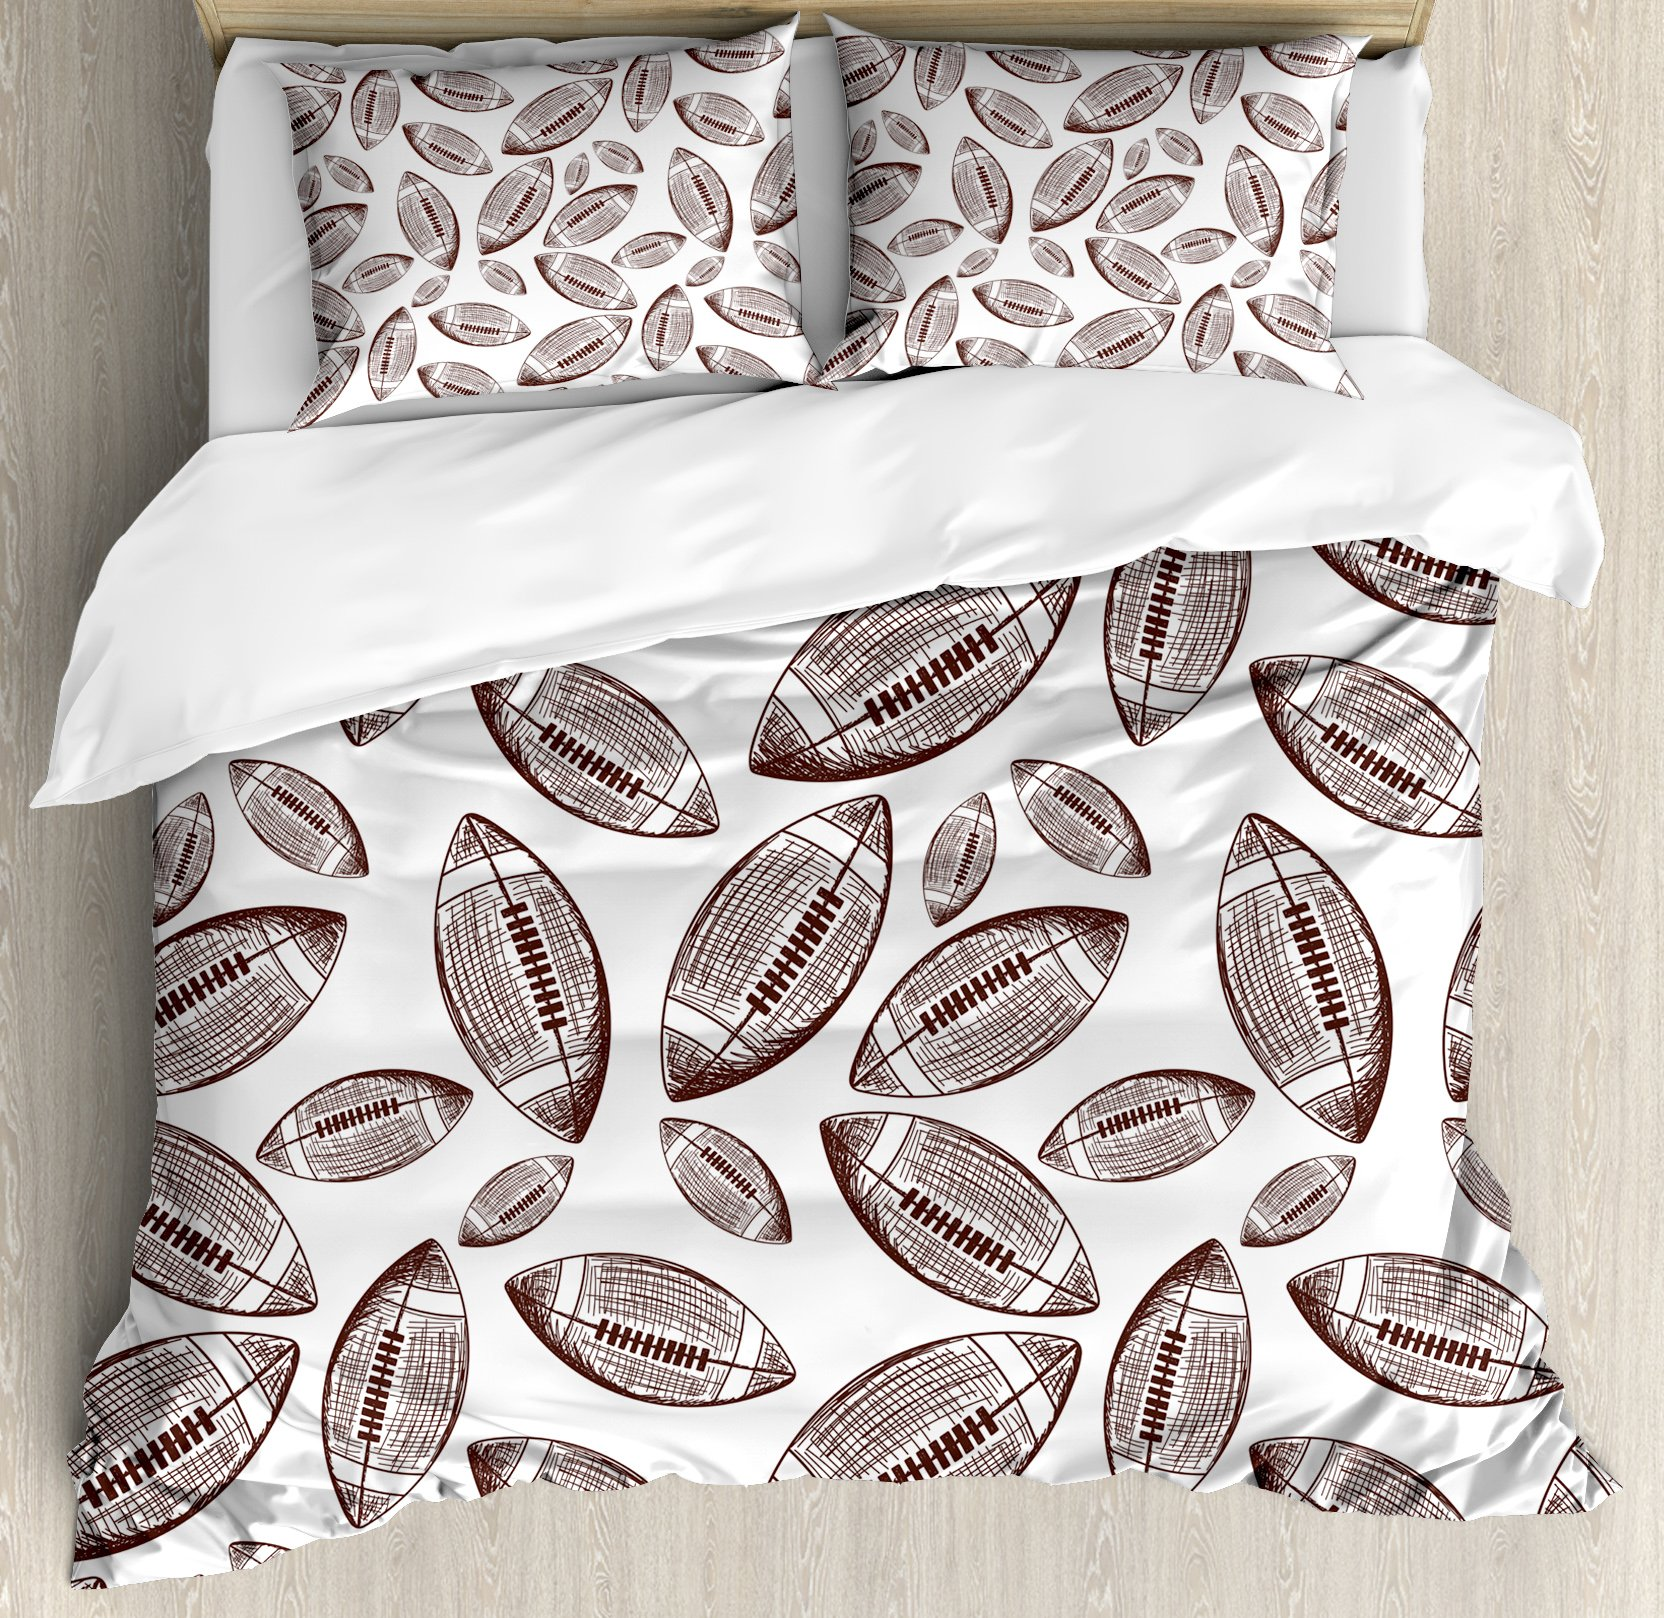 Football Duvet Cover Set King Size by Ambesonne, Sports Inspired Pattern Rugby Balls in Hand Drawn Sketch Style Game Symbol, Decorative 3 Piece Bedding Set with 2 Pillow Shams, Dark Brown White